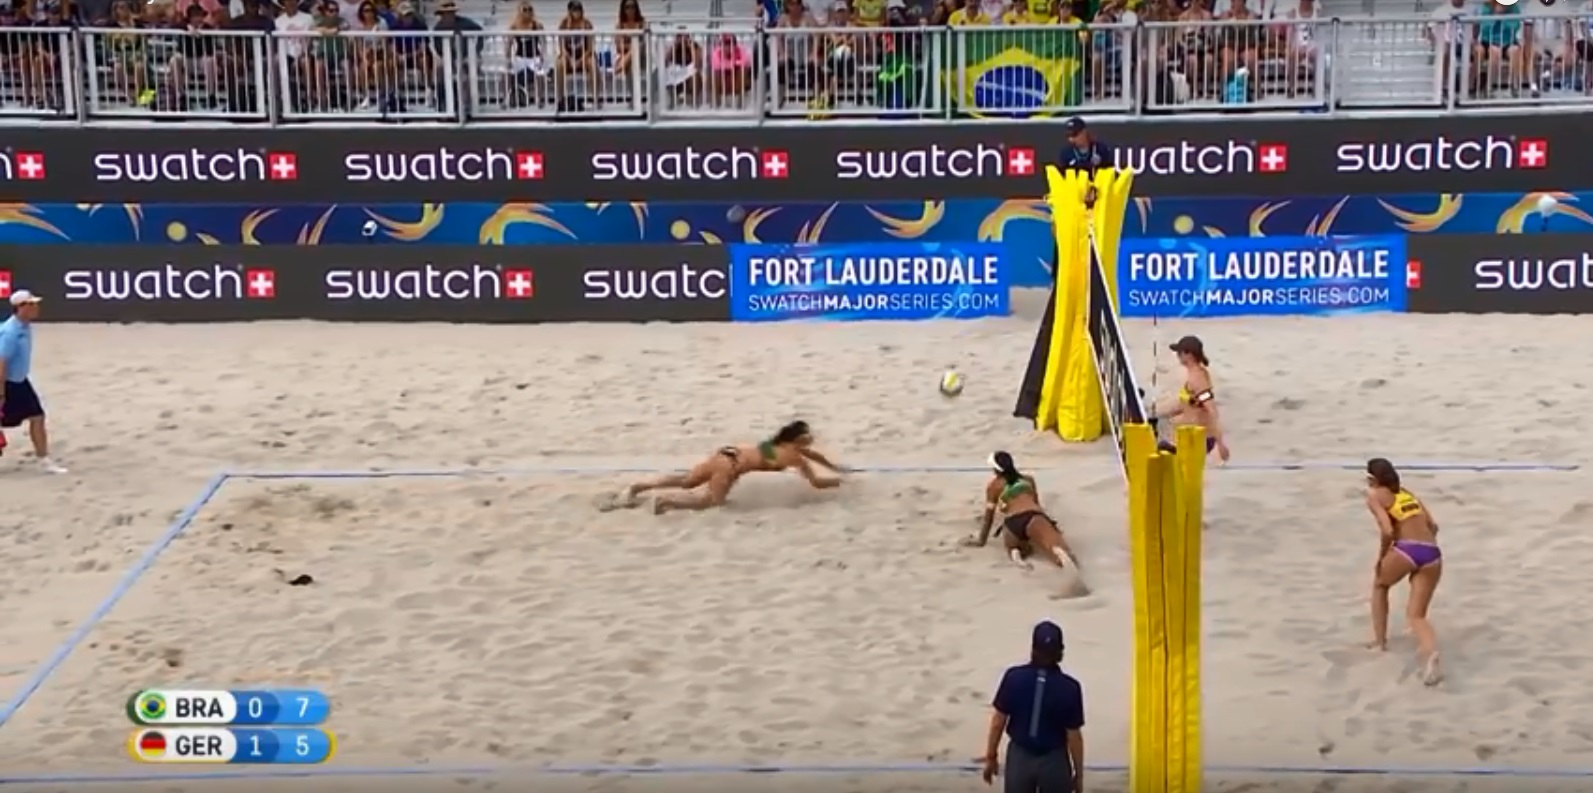 #FTLMajor 2017 How to rally!